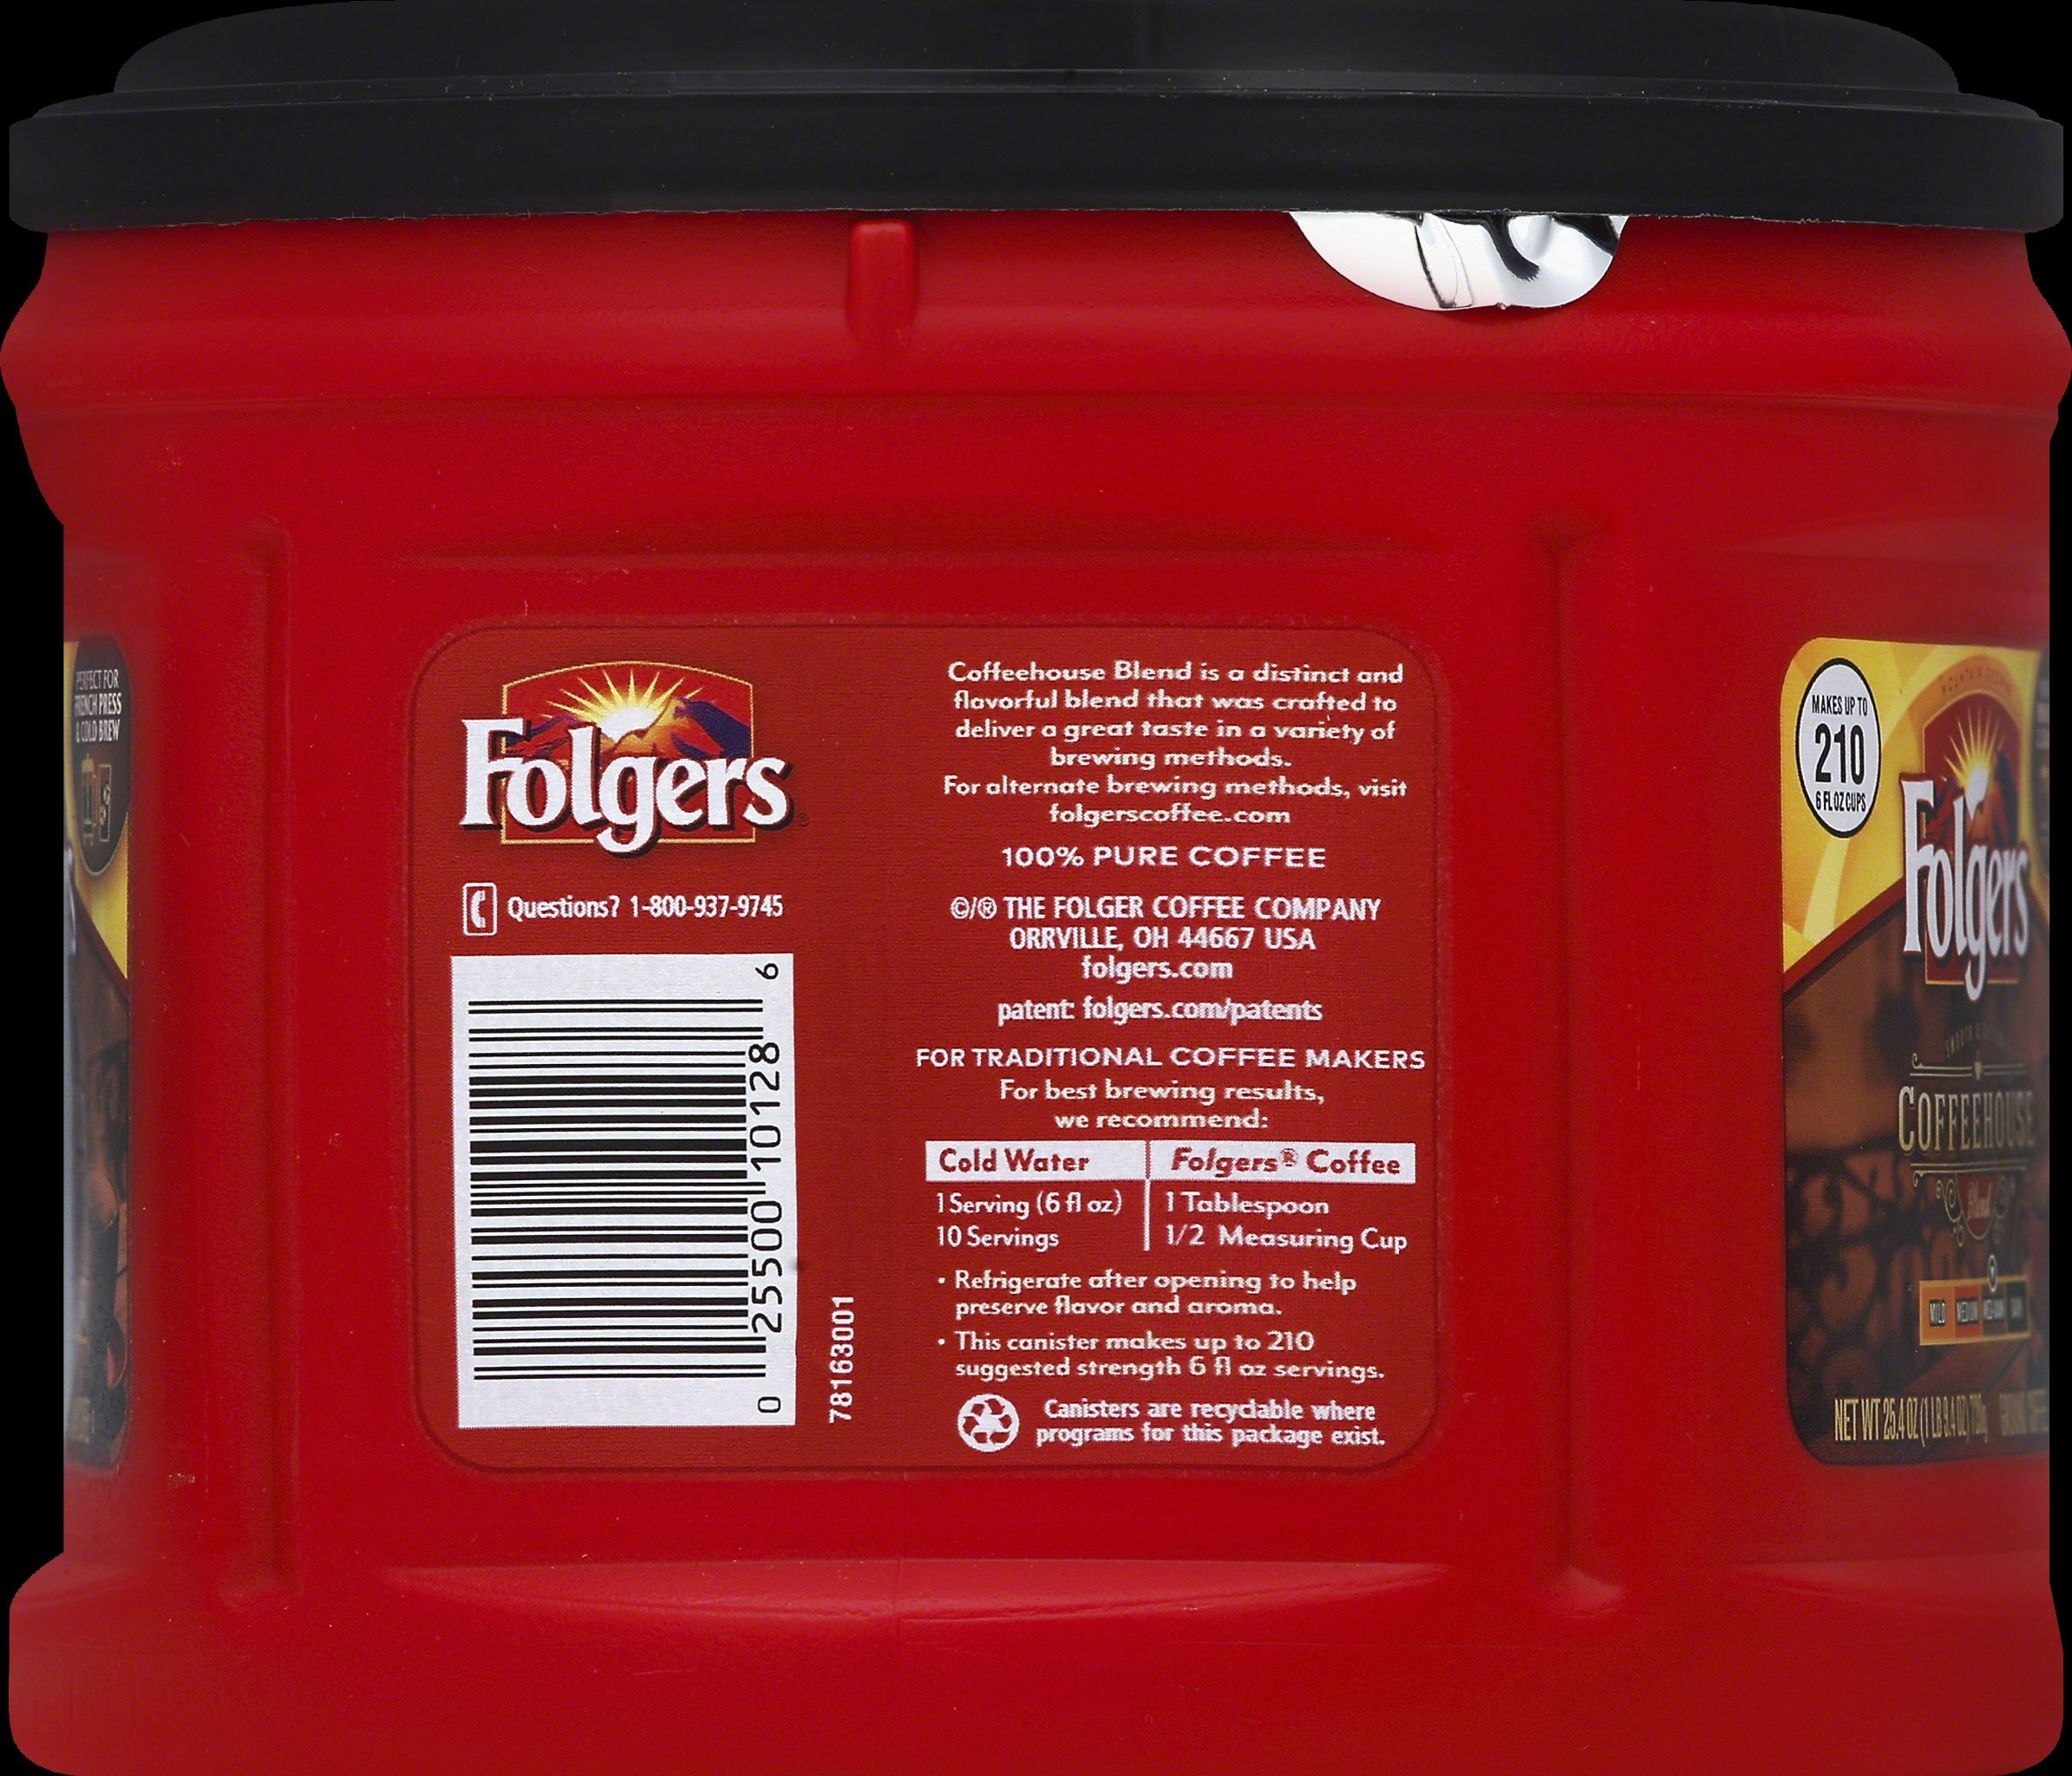 Folgers Coffeehouse Blend Ground Coffee, Medium-Dark Roast, 25.4 Ounce (Pack of 6) by Folgers